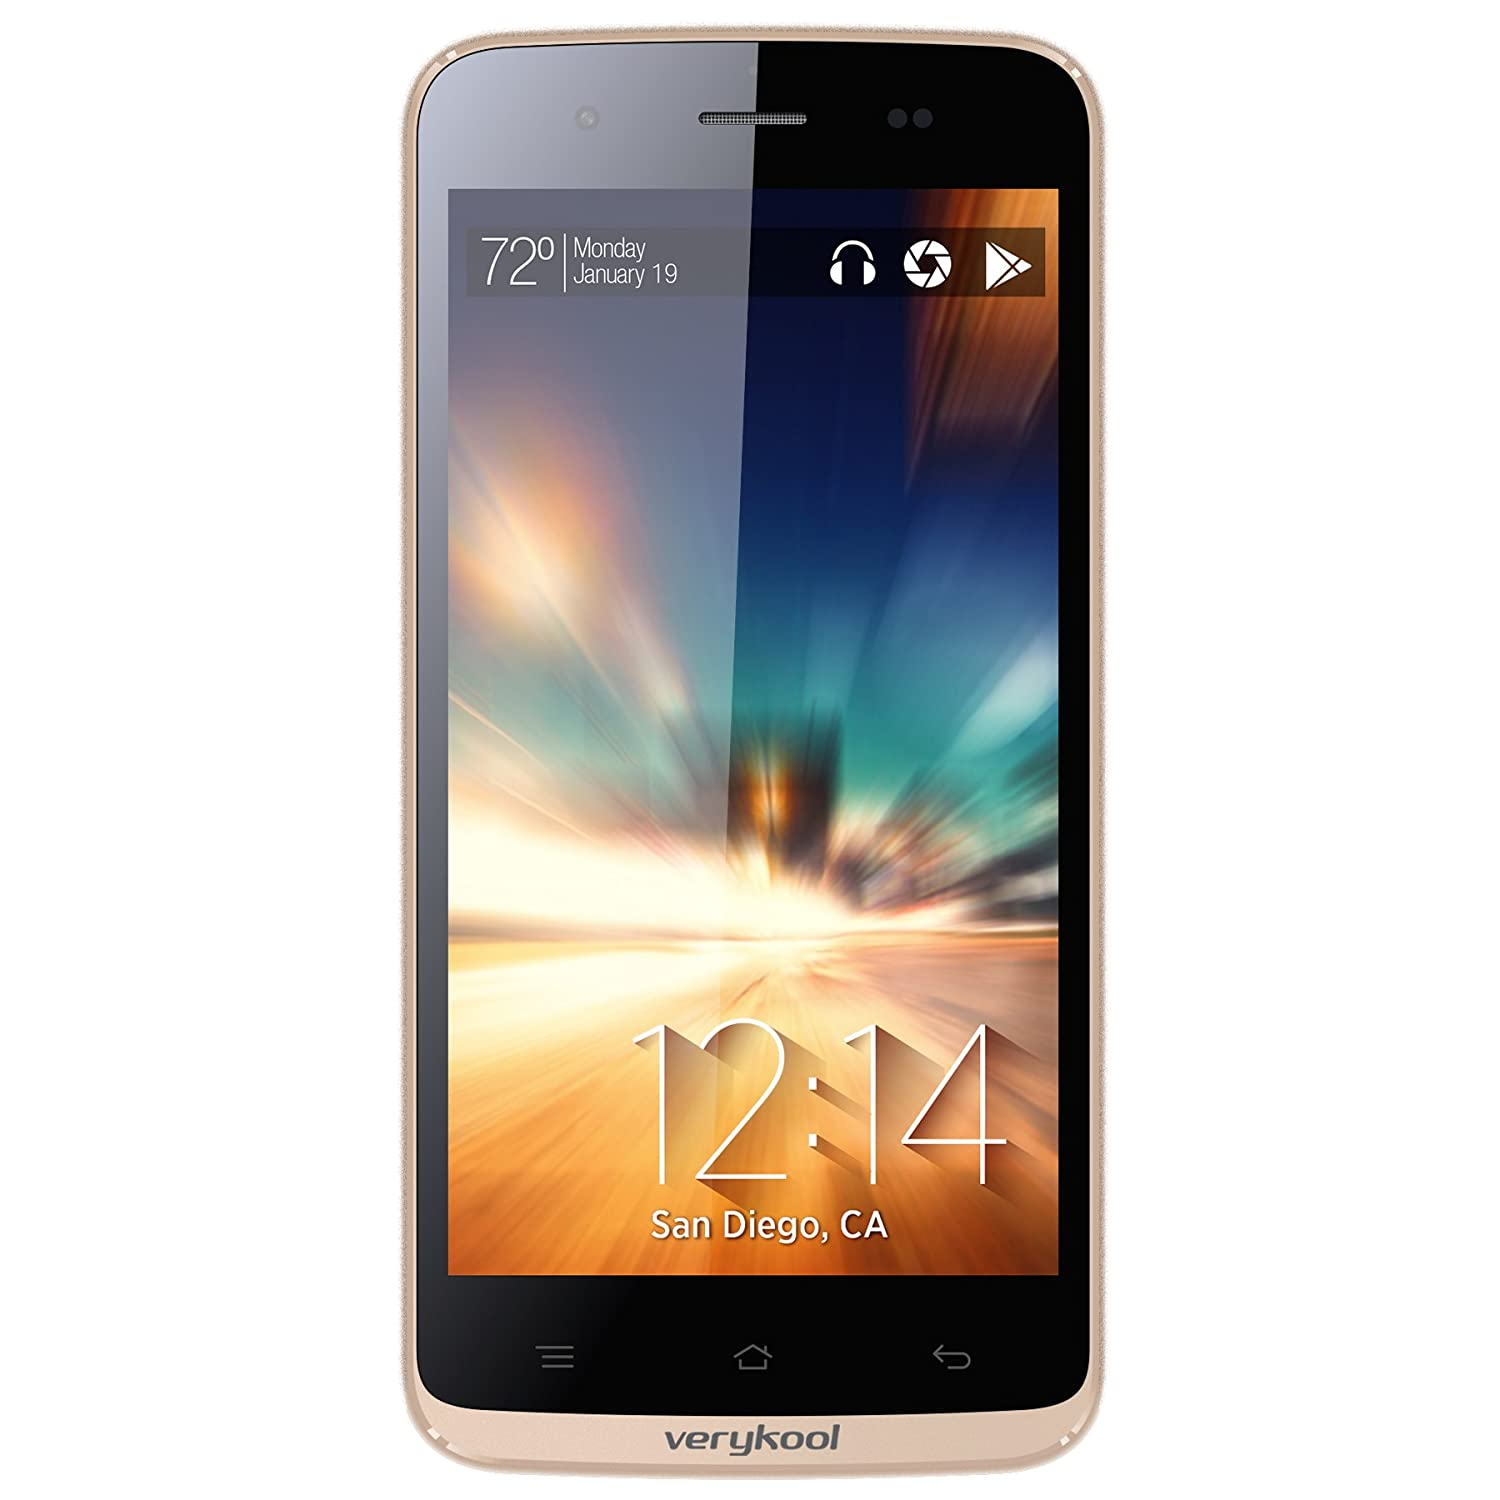 """verykool s5017 Dorado 4G HSPA+ 5.0"""" IPS LCD Unlocked GSM Smartphone Android 4.0 Bluetooth 1.3GHz Dual-Core 8MP WiFi USB MP3 Email AT&T TMobile (Yellow Gold)"""